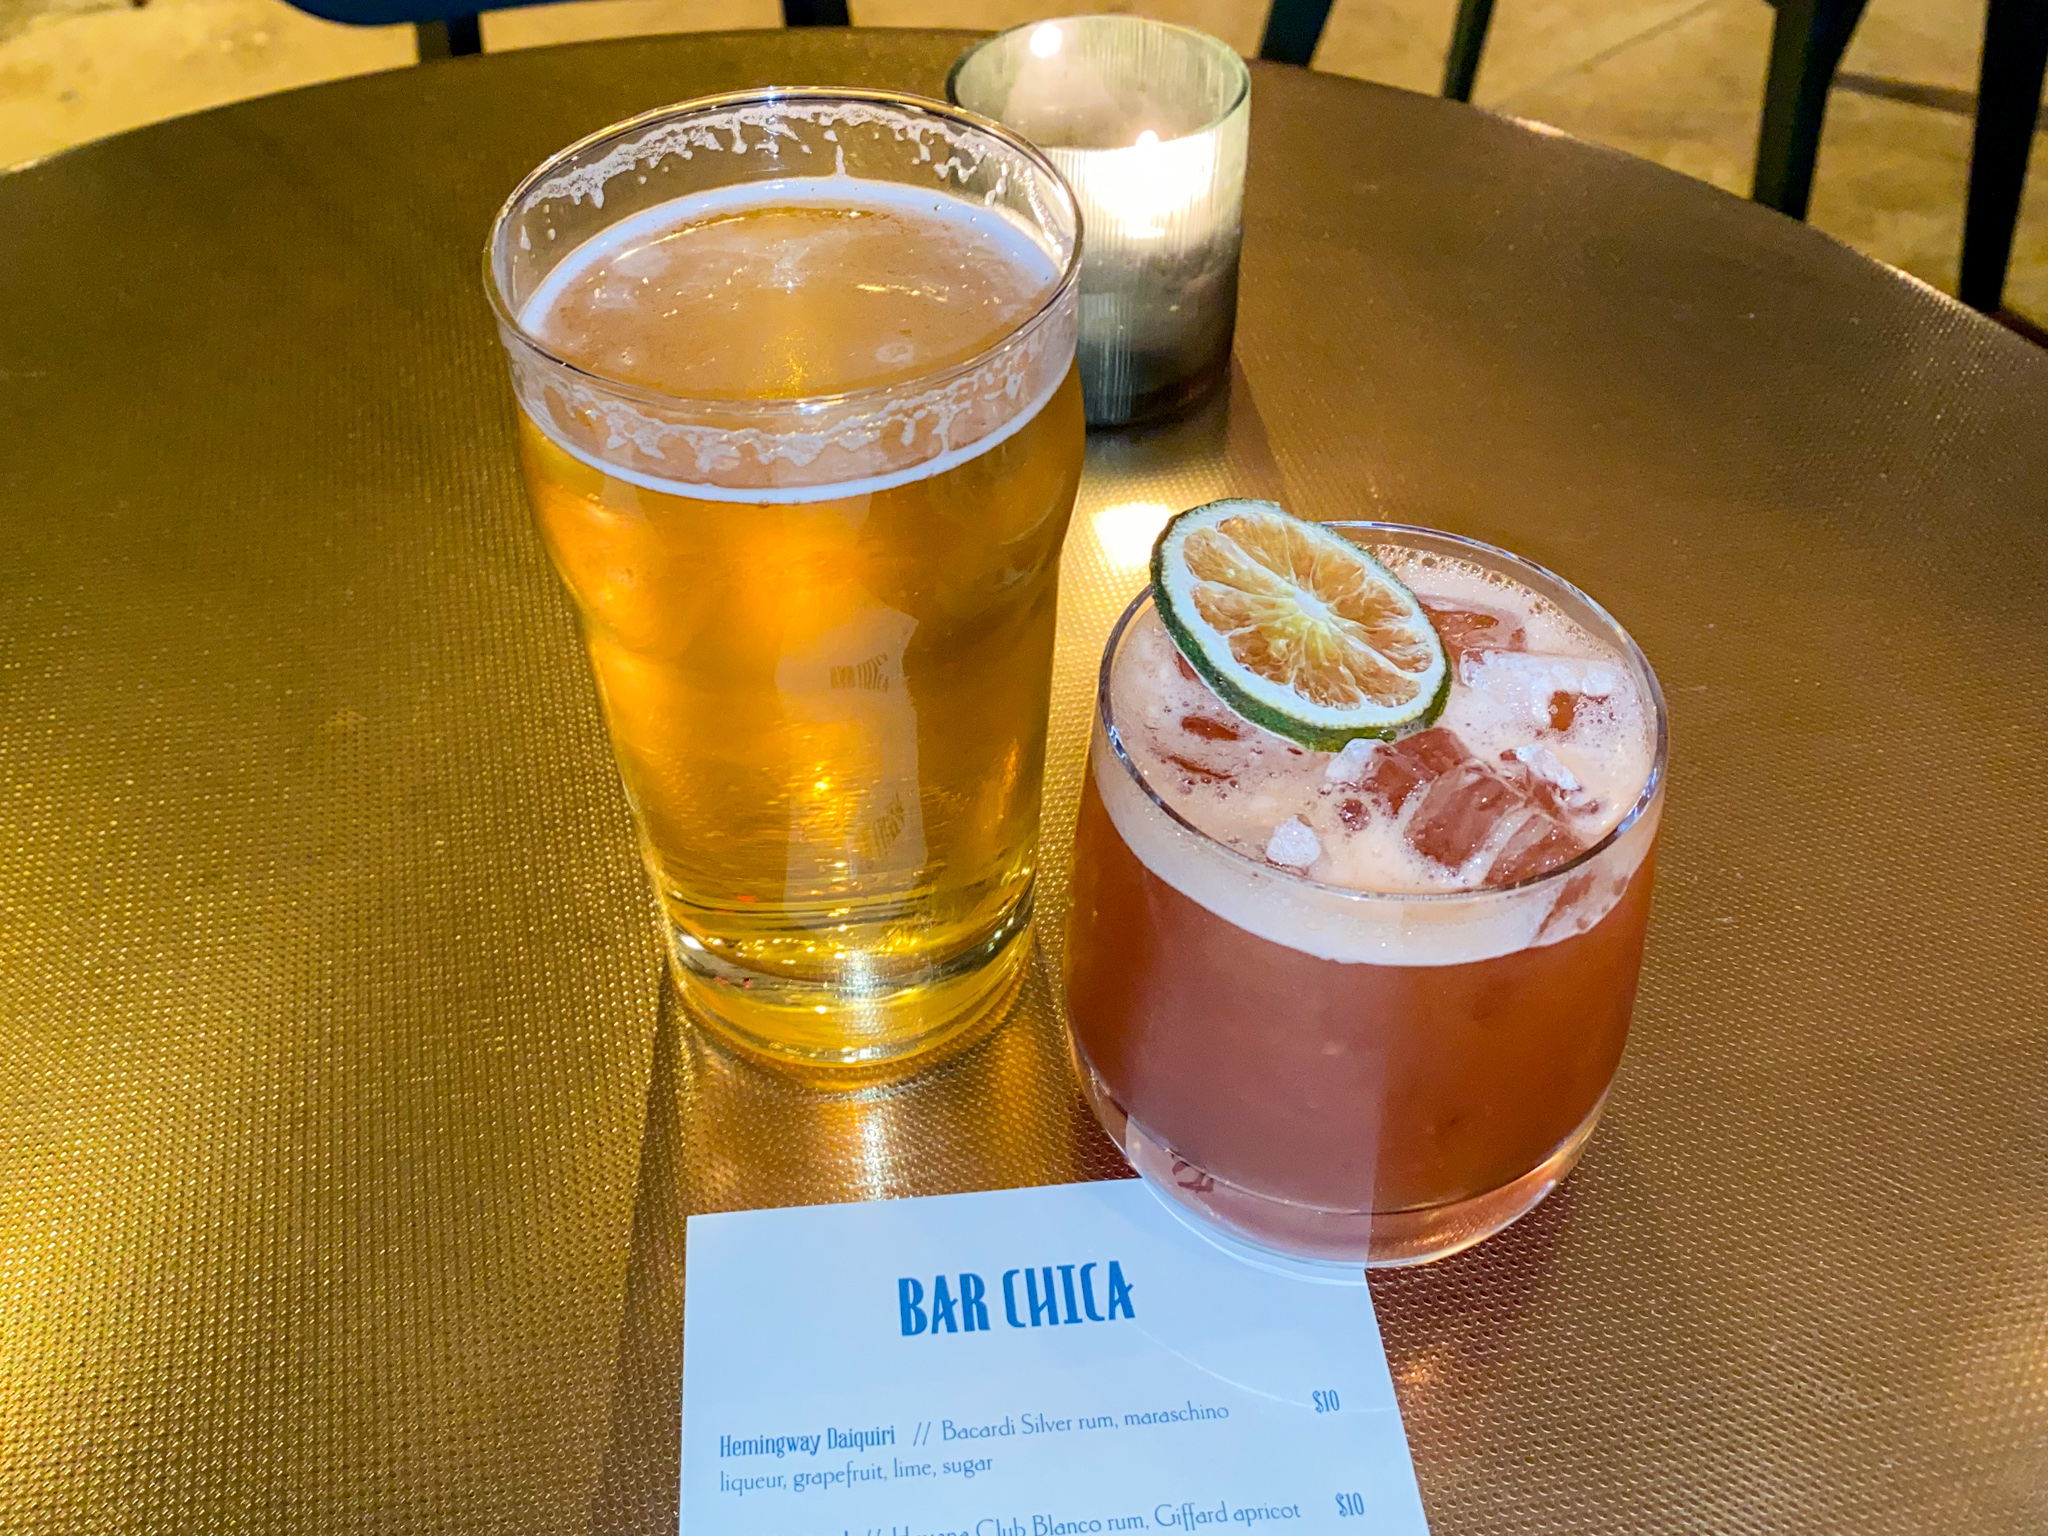 Bar Chica Pilsner and Firing Squad Cocktail